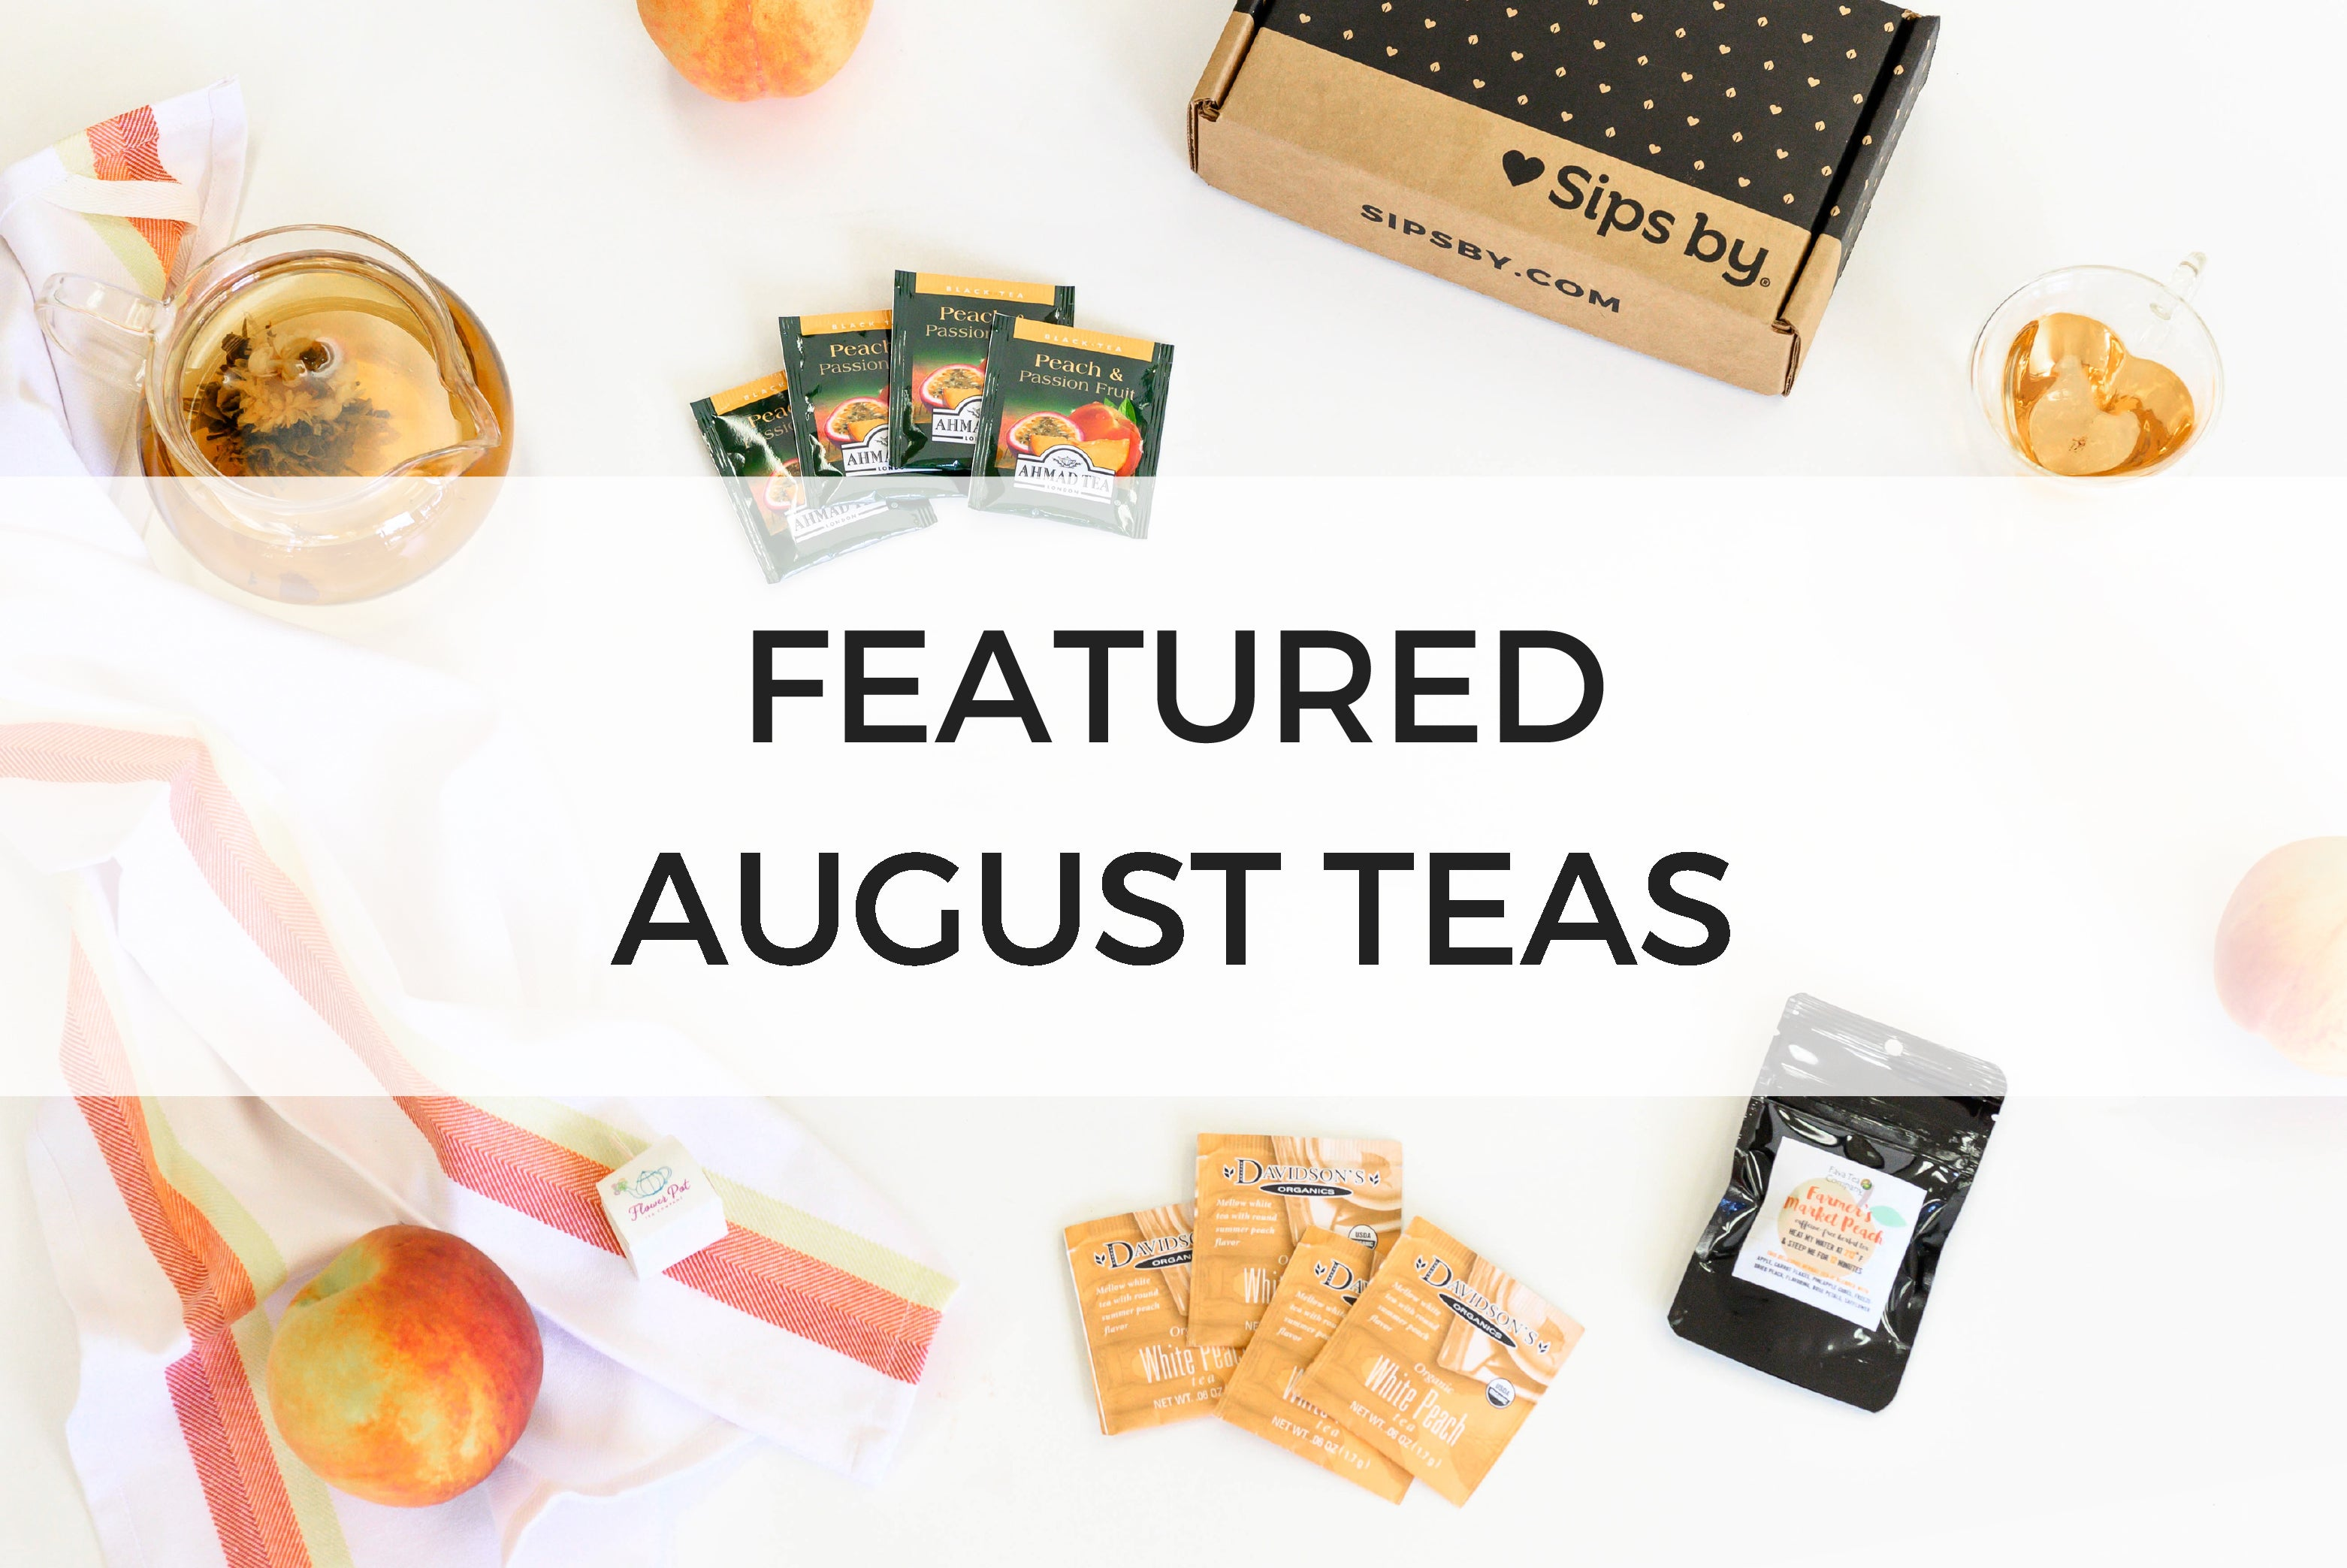 august featured teas